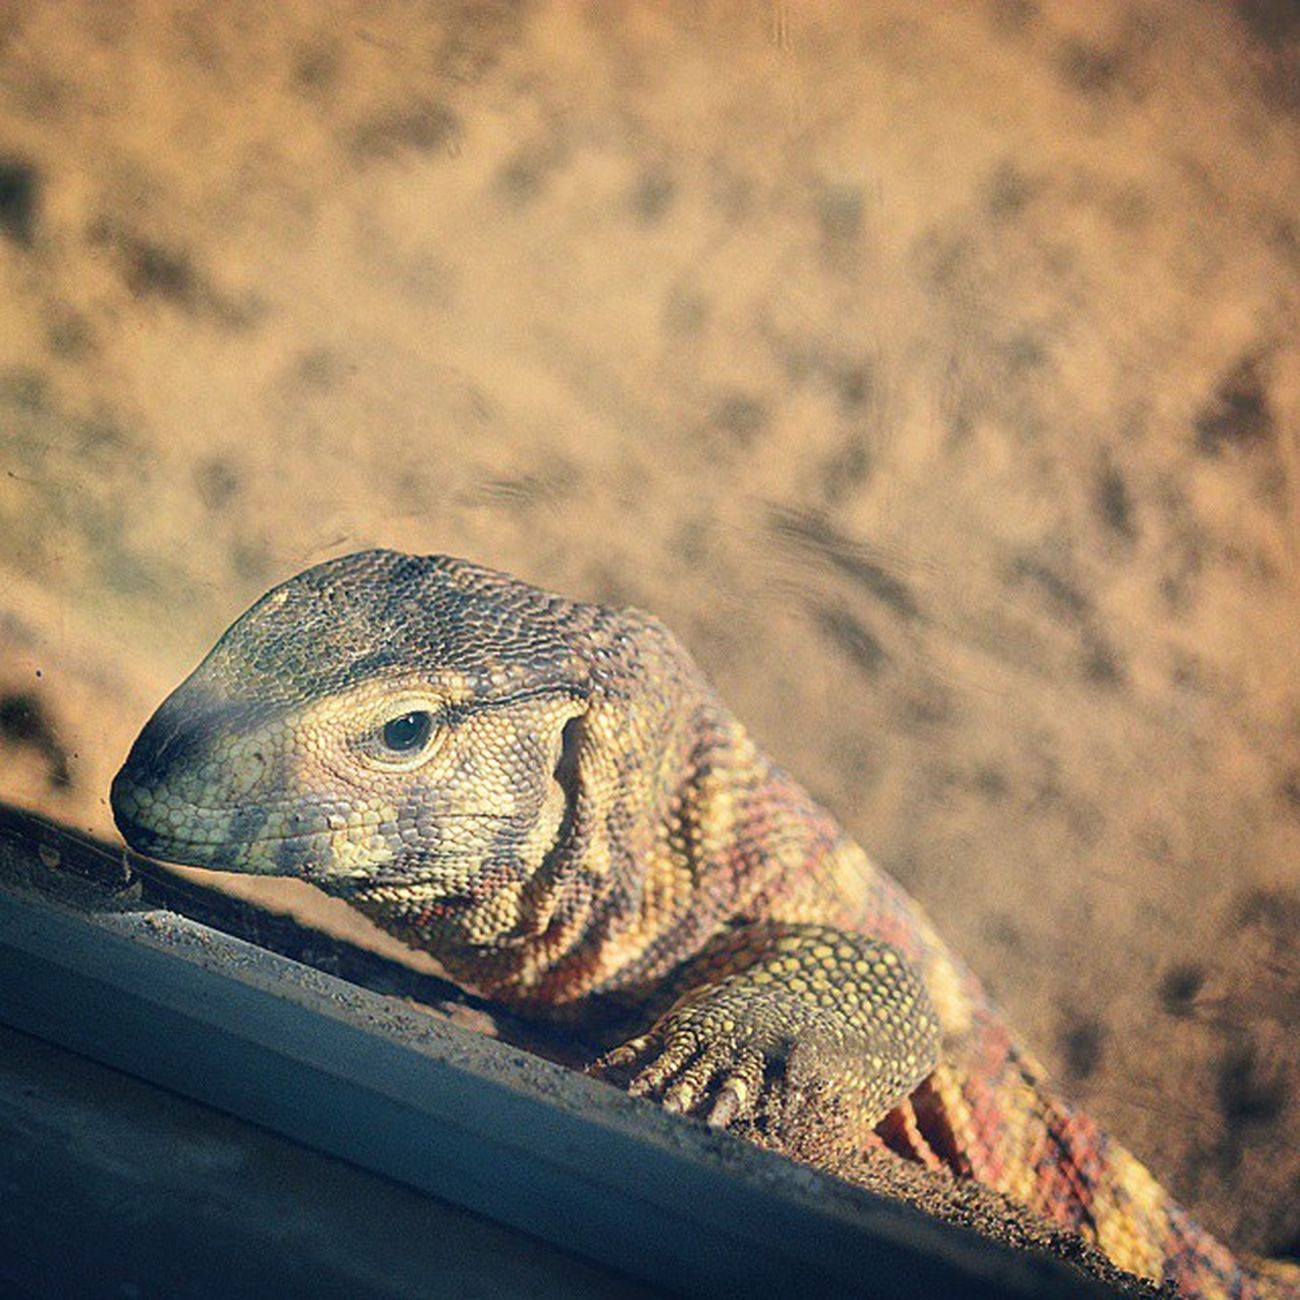 Gagans_photography Reptiles Instachandigarh Fear Factor Gagans_photography